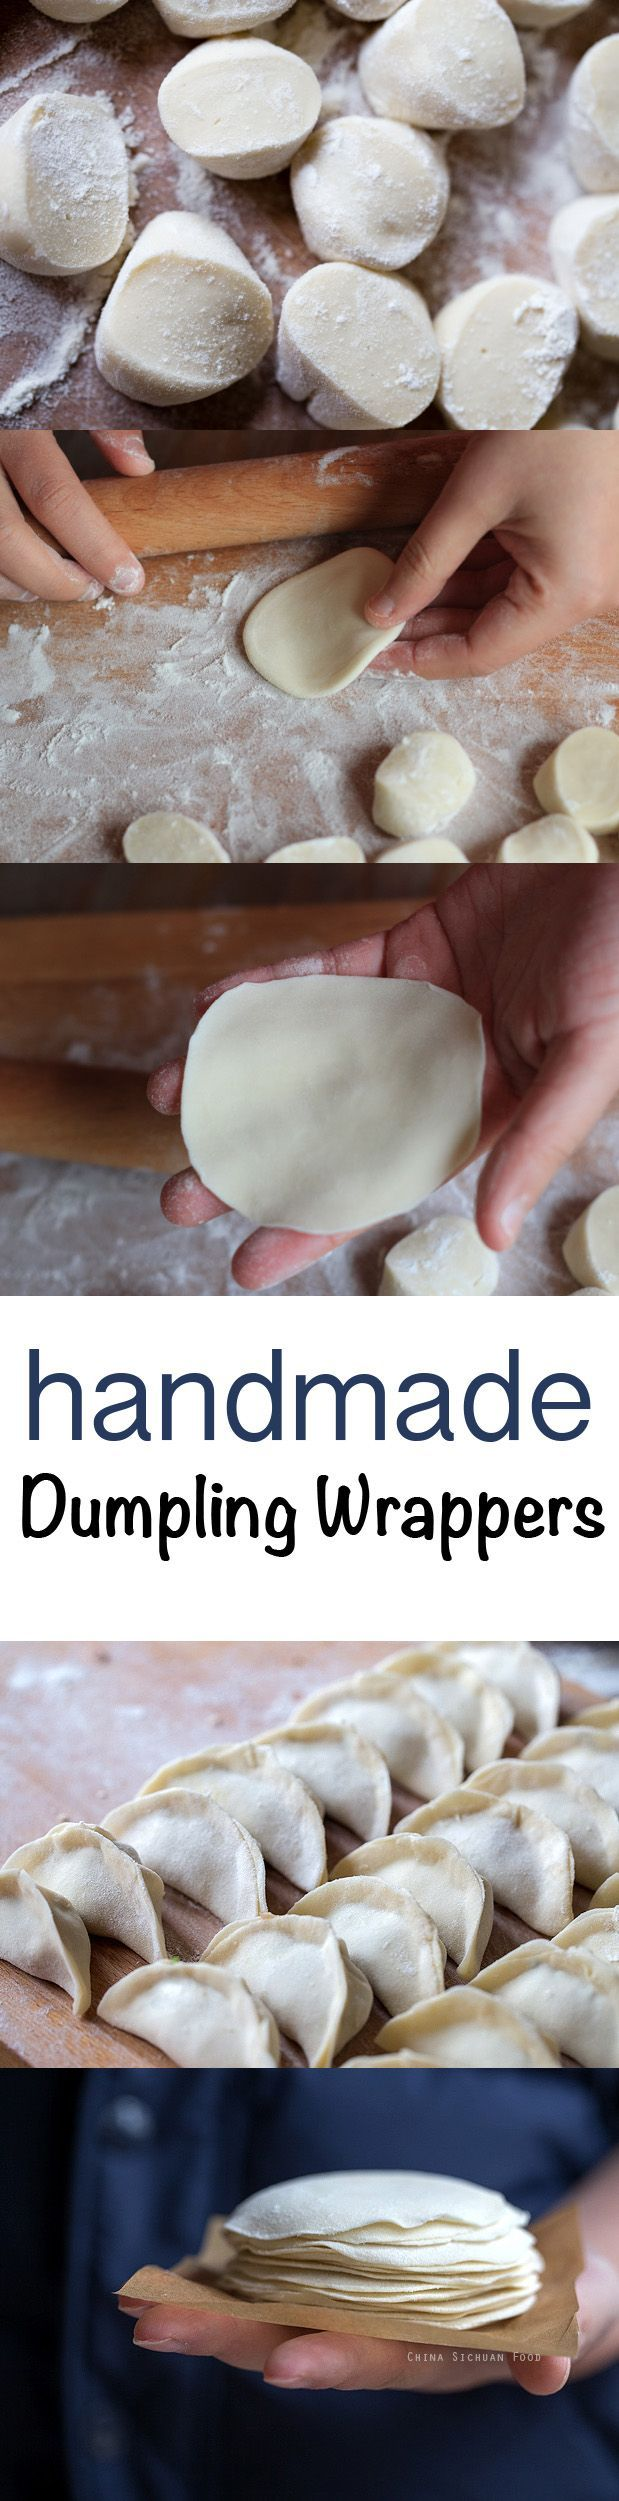 Dumpling Wrappers #homemade | http://ChinaSichuanFood.com